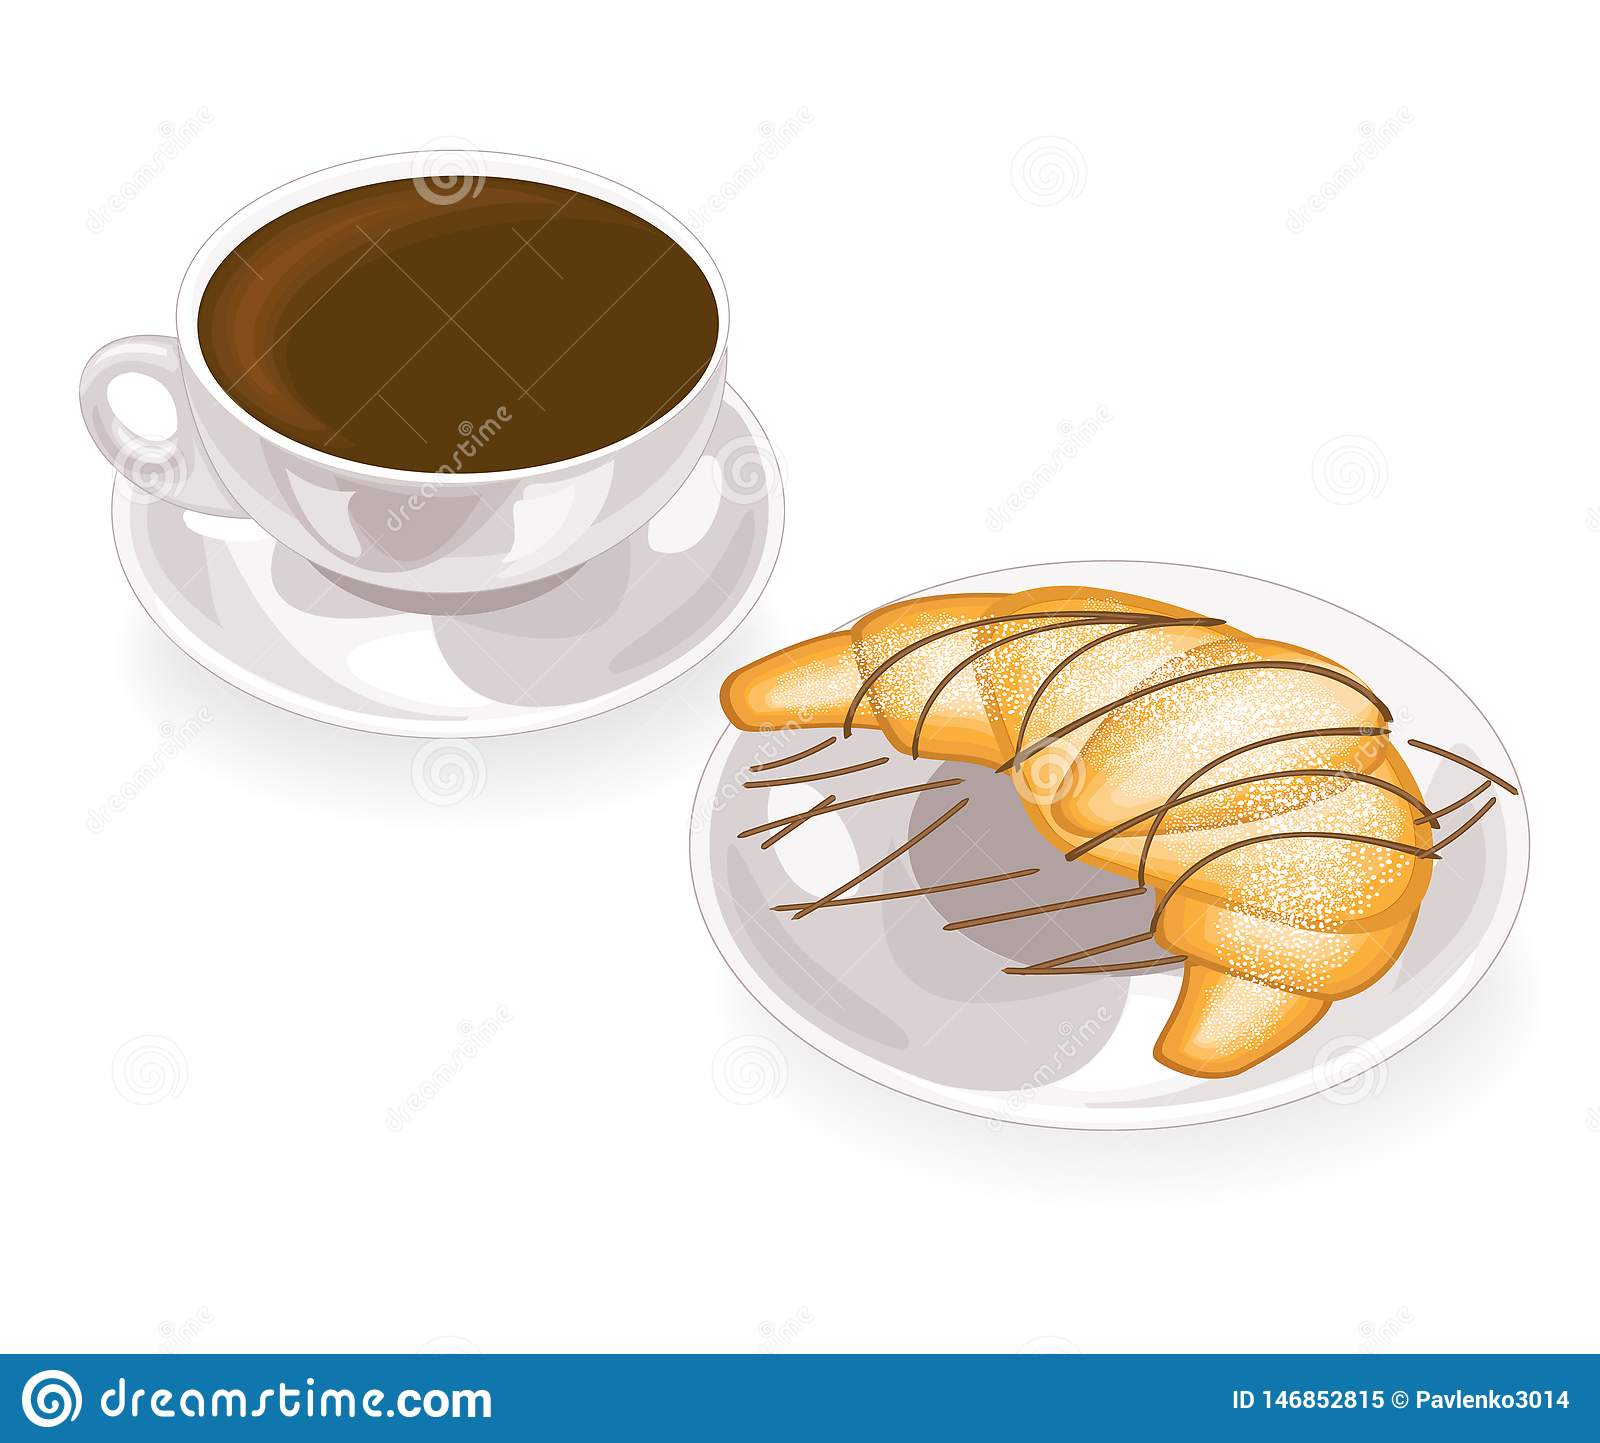 A cup of delicious black coffee and a fresh croissant on a plate with chocolate. Vector illustration